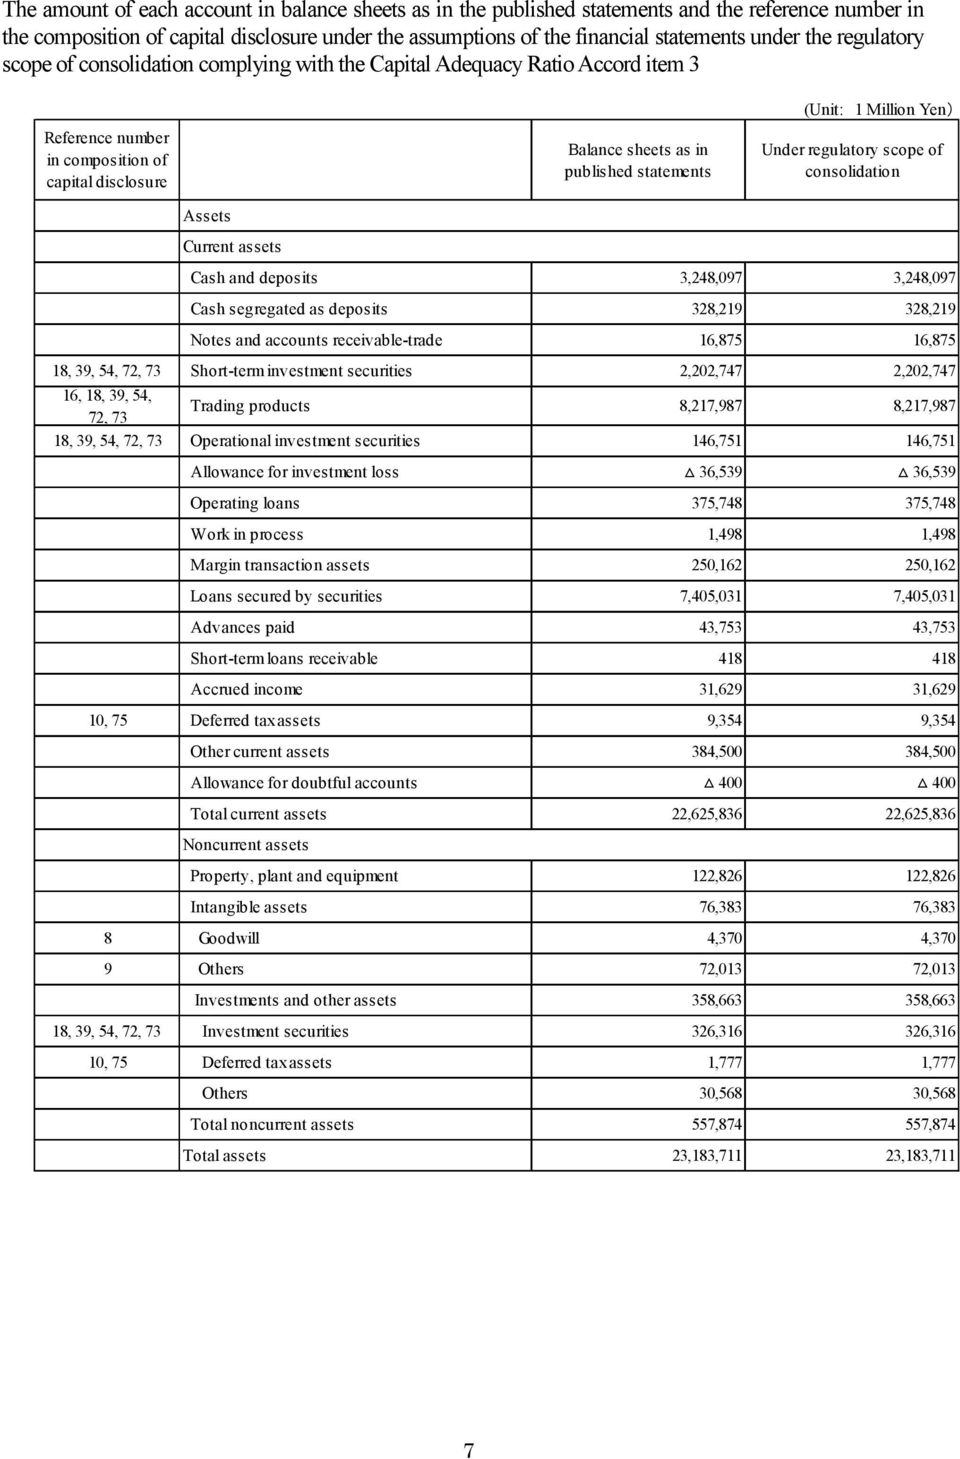 Million Yen) Under regulatory scope of consolidation Assets Current assets Cash and deposits 3,248,097 3,248,097 Cash segregated as deposits 328,219 328,219 Notes and accounts receivabletrade 16,875